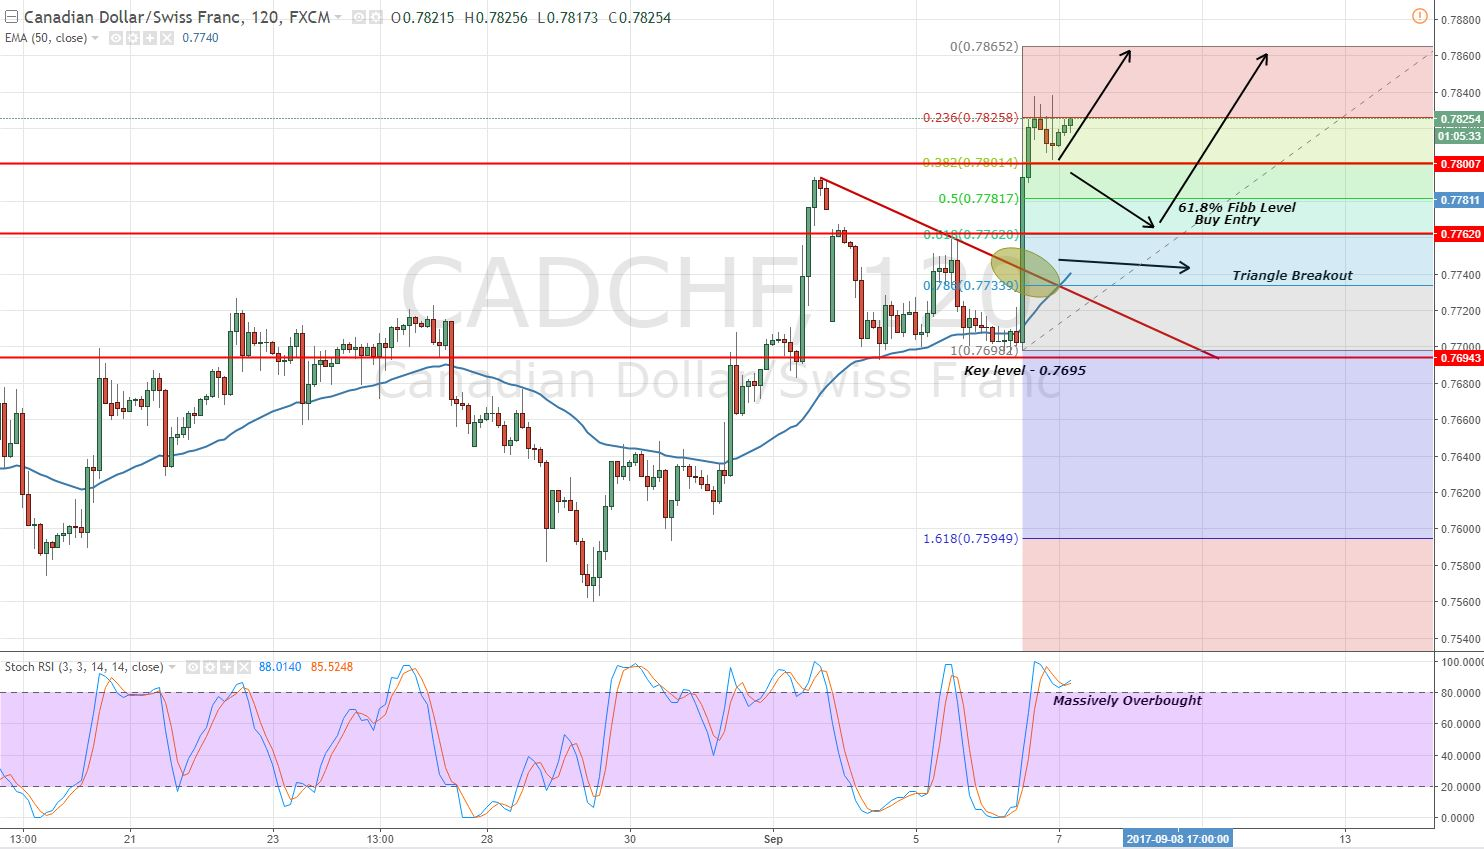 CADCHF - Triangle Breakout - 4 Hour Chart